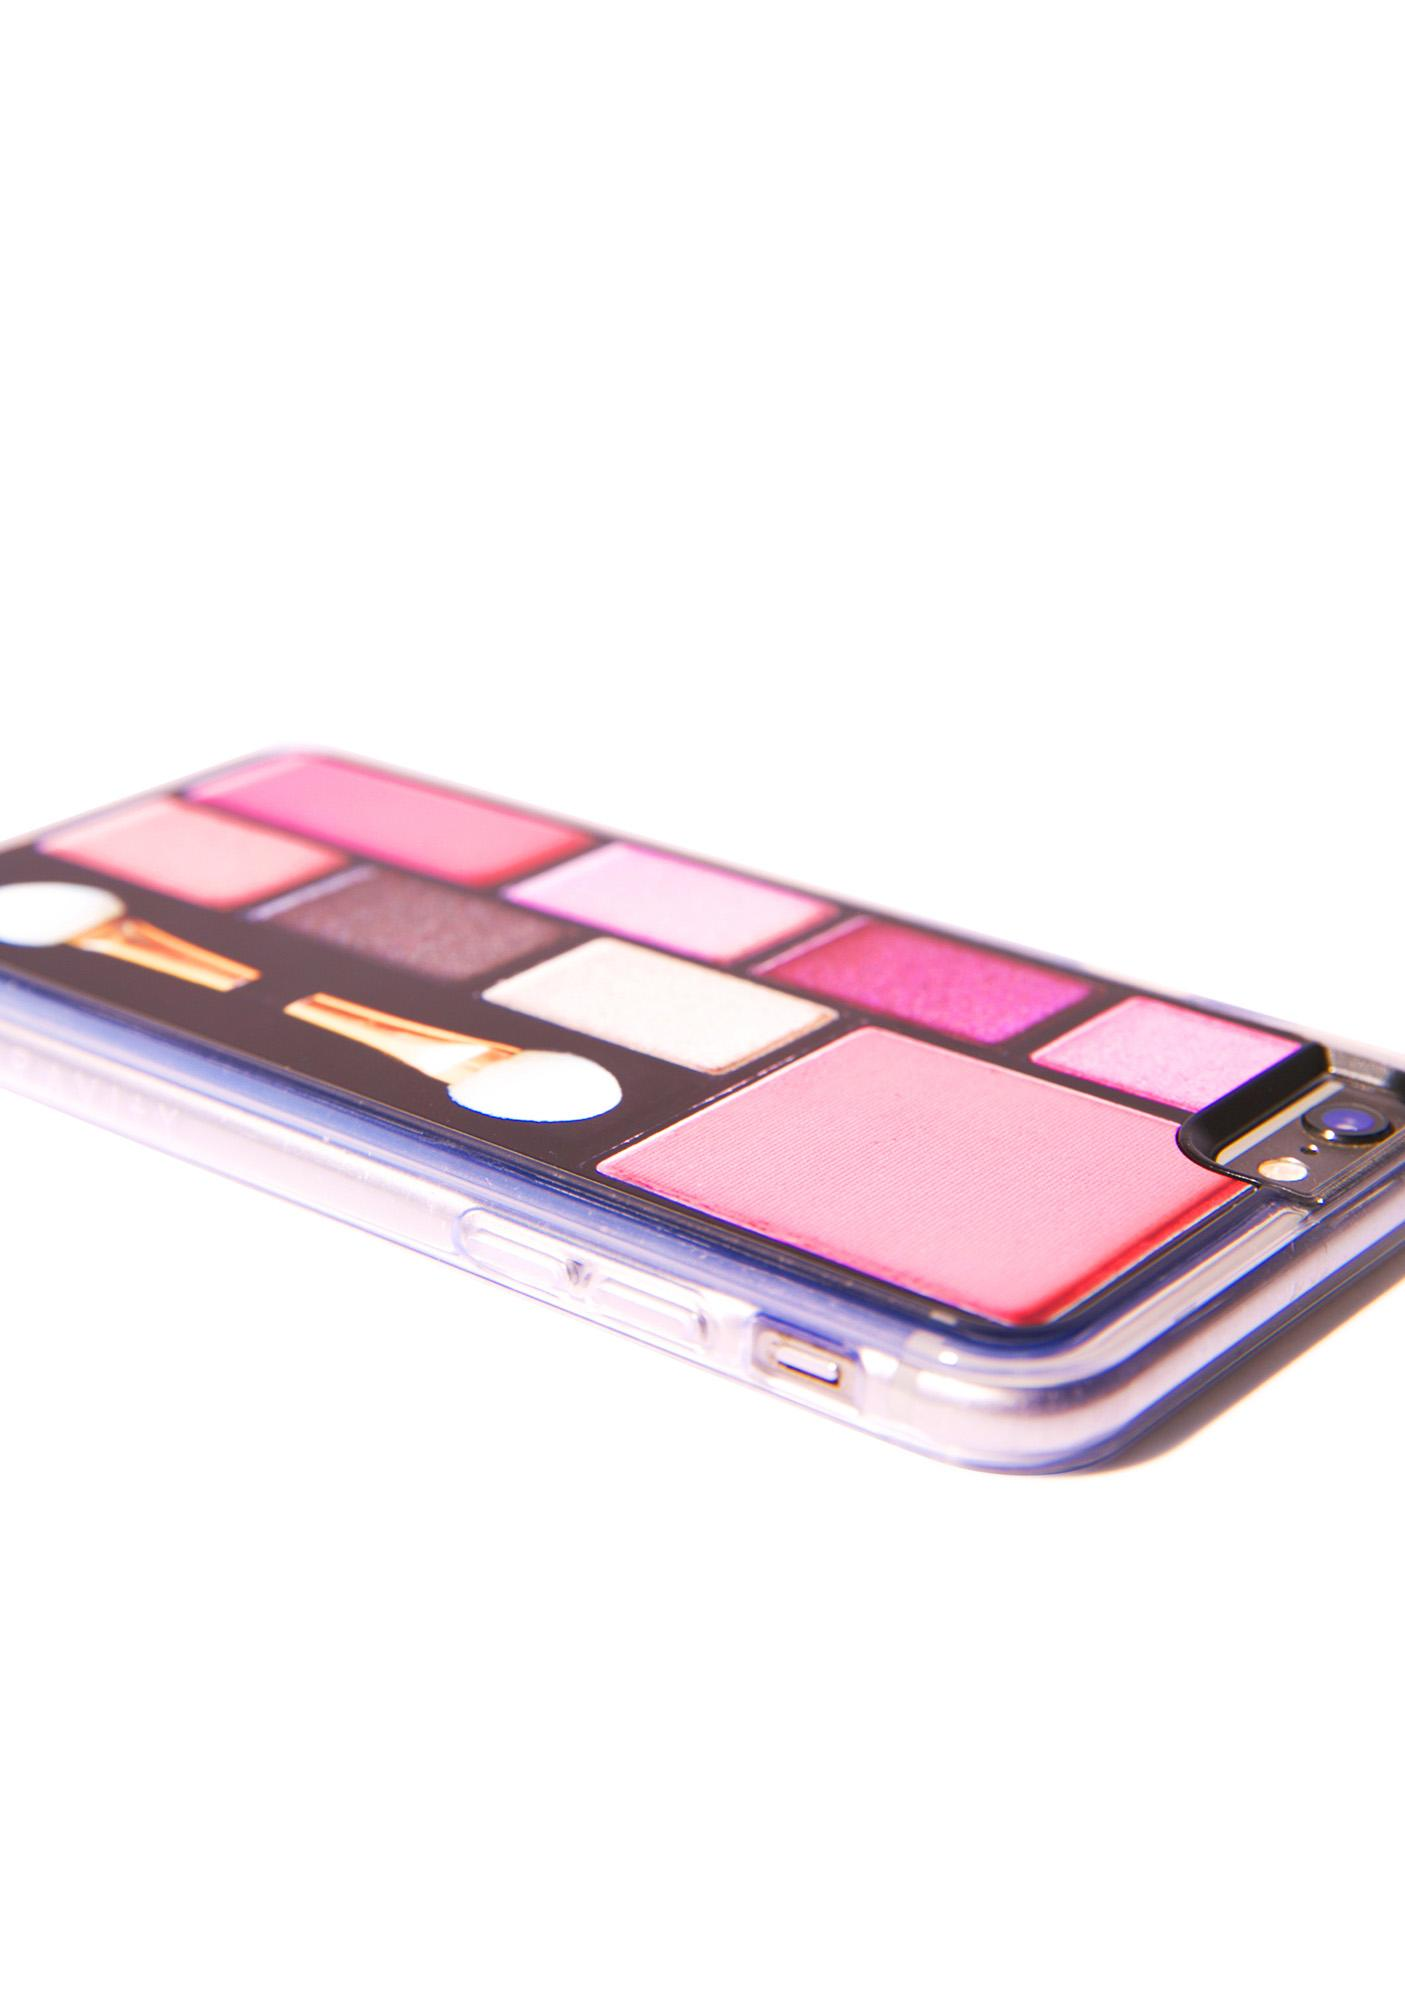 Zero Gravity Compact iPhone 6 Case